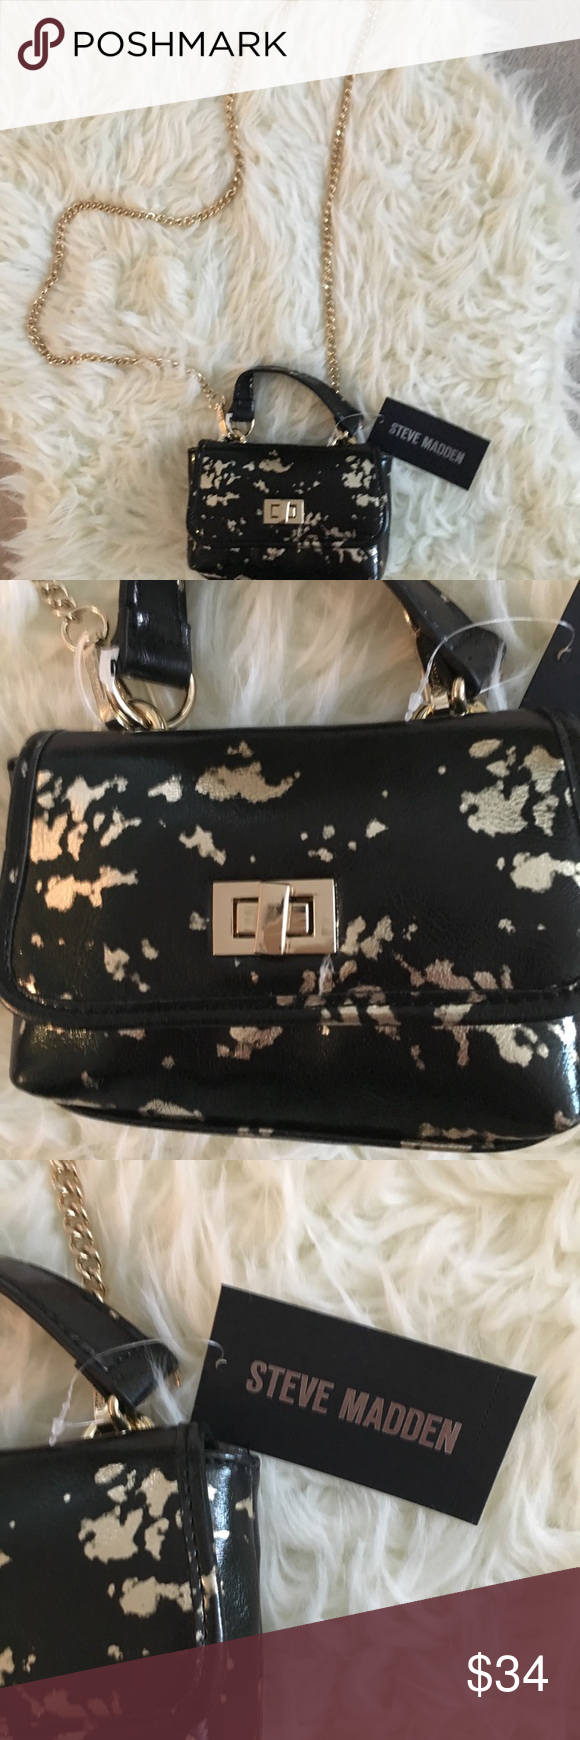 """e237182ea Steve Madden crossbody bag✨✨✨ Steve Madden Colton bag. Cross body bag with top  handle and convertible chain strap✨✨ Chain strap 48"""" Purse length ⚡️6"""" ..."""